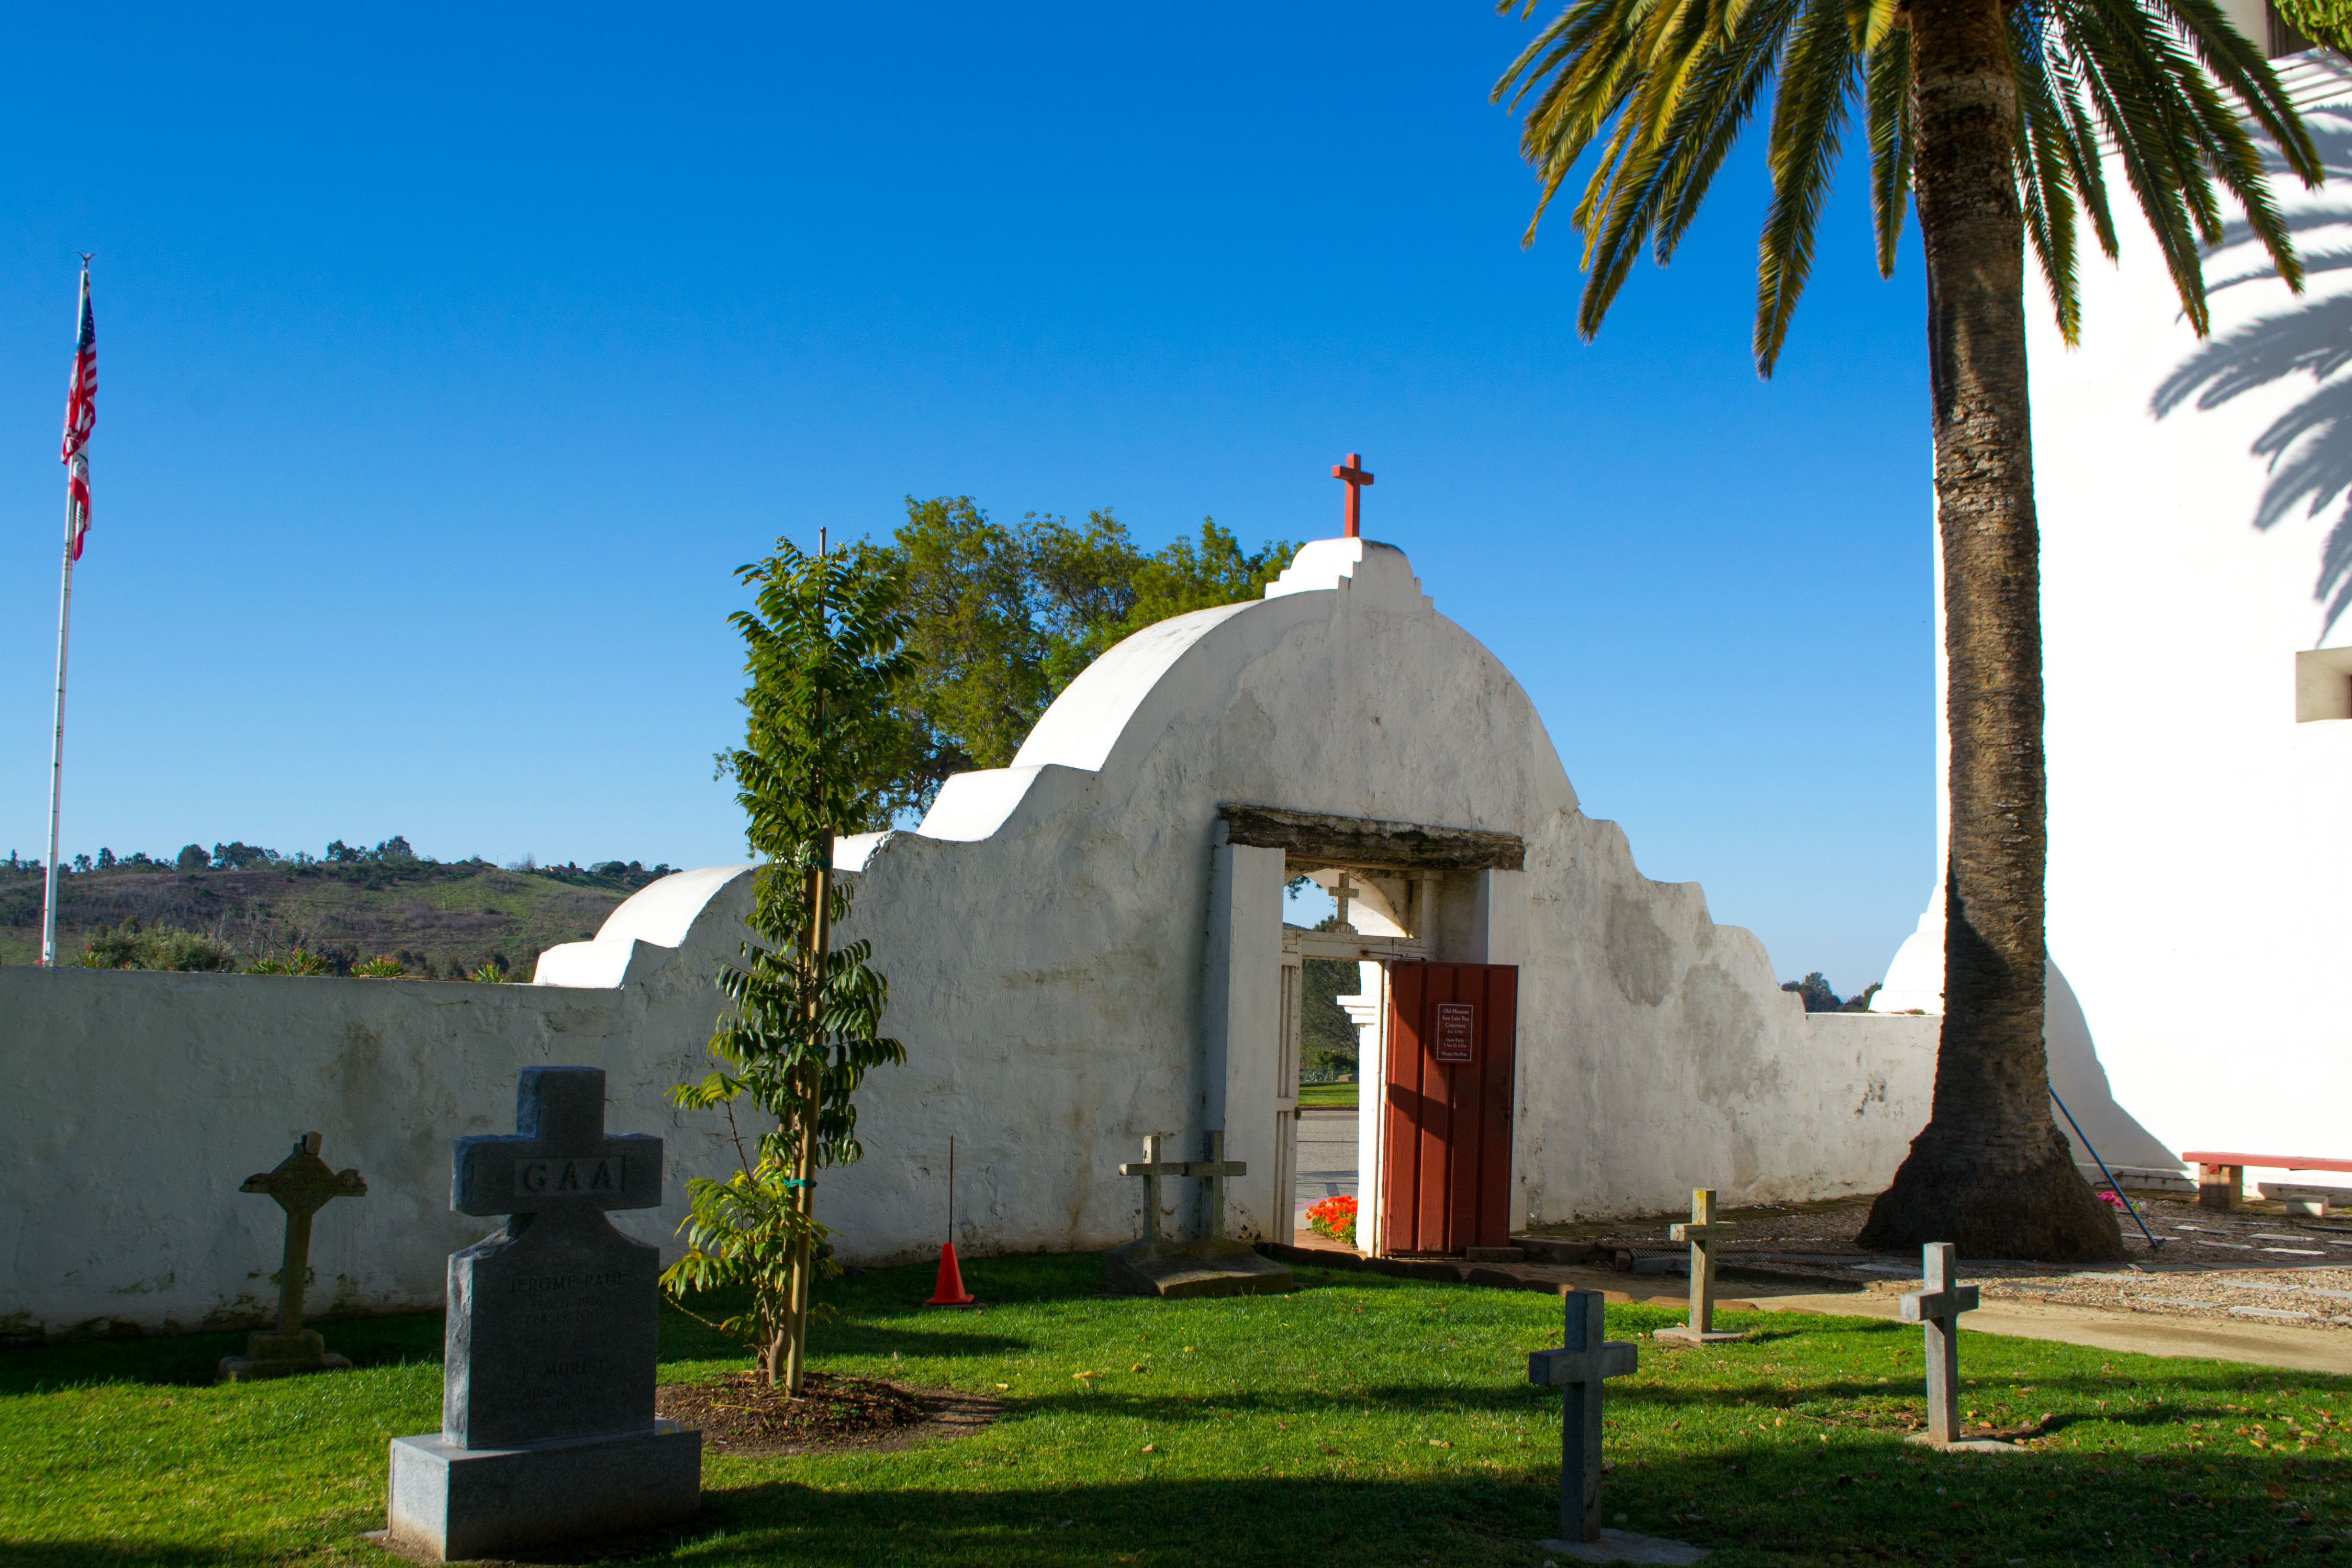 san luis rey dating site Padre fermín de francisco lasuén de arasqueta founded the 18th of the spanish missions, san luis rey de francia, in 1798 he chose the original site, just east of modern-day oceanside, for.